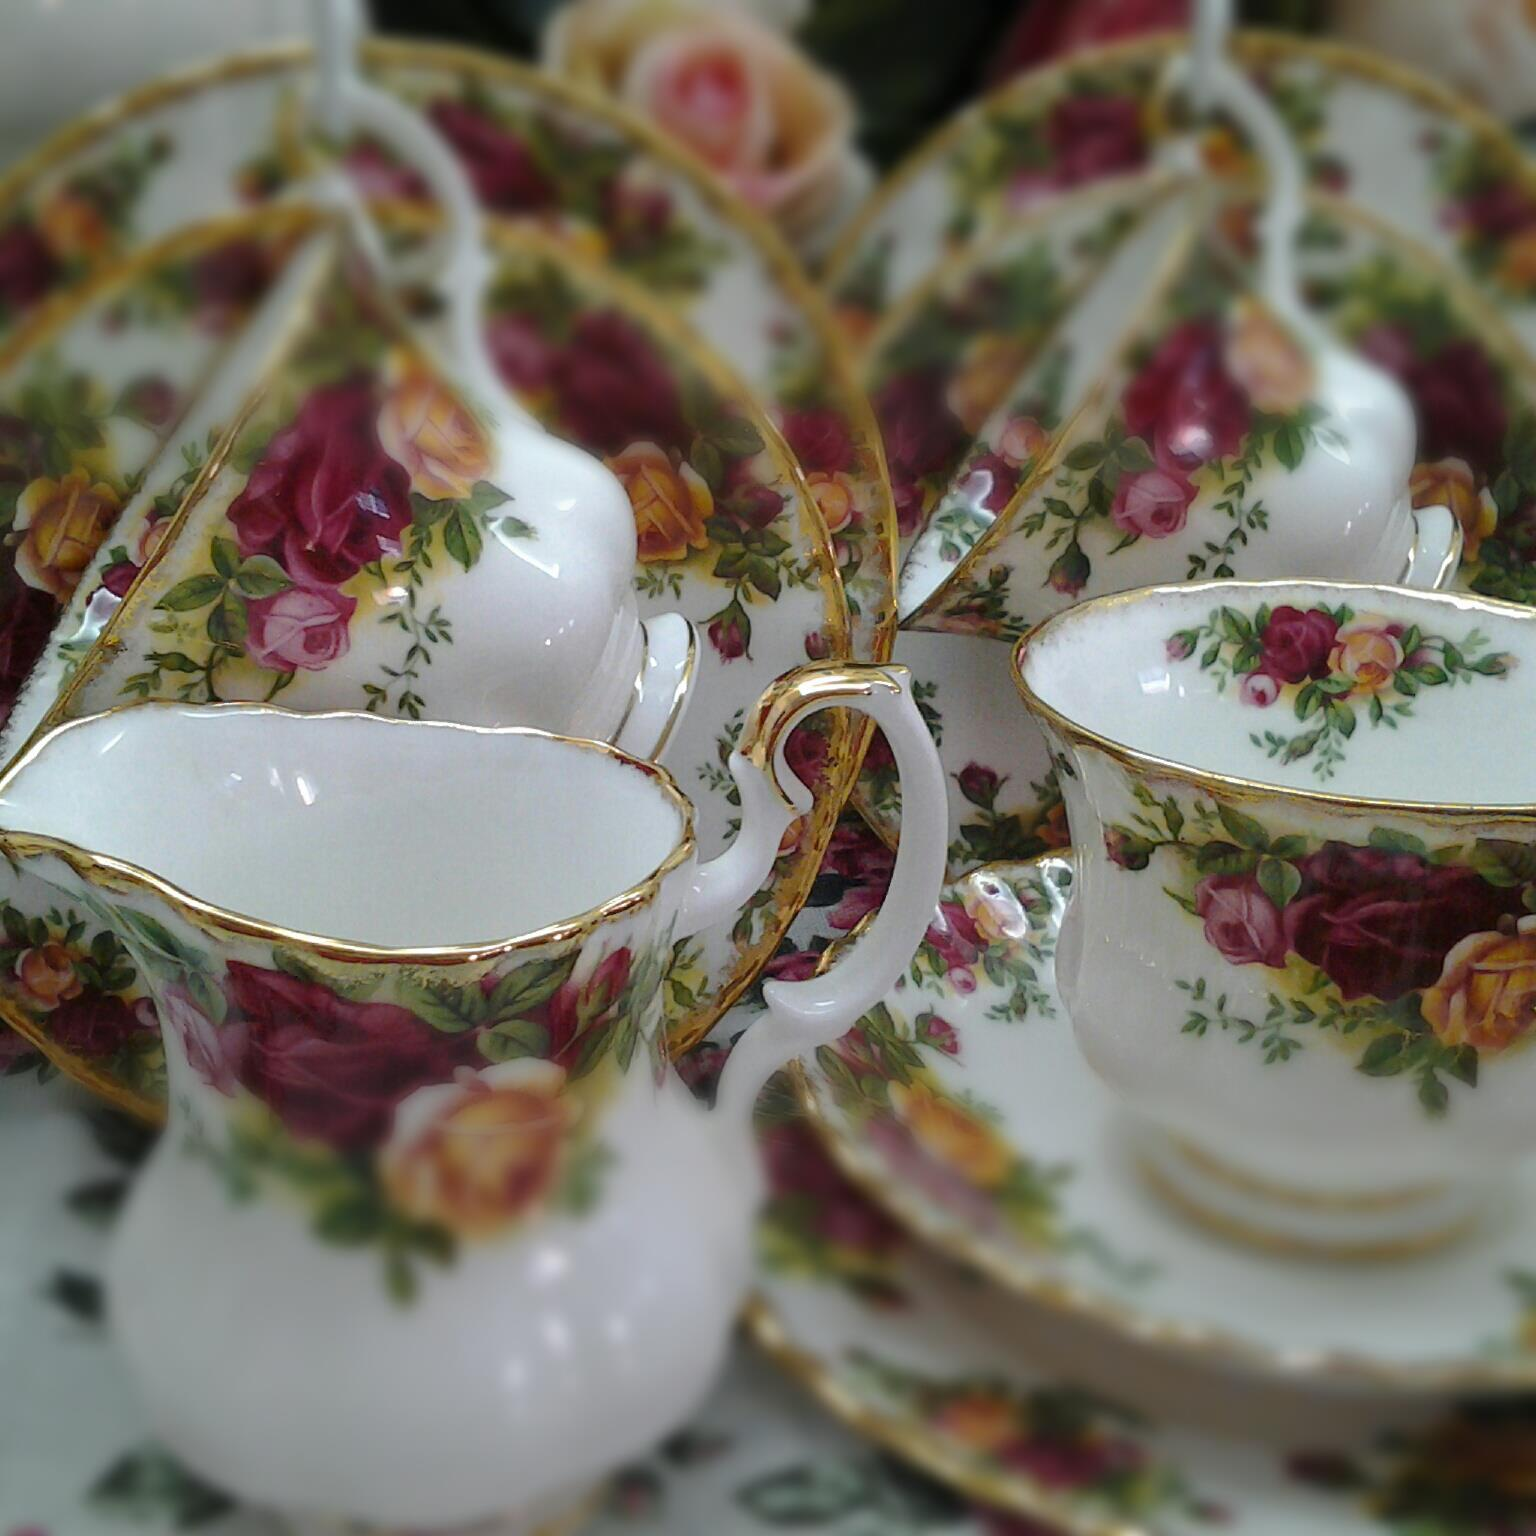 Royal Albert Old Country Roses Complete Dinner Set Made in England 6 x dinner plate 6 x soup plate 6 x salad plate 6 x bowl 6 x tea plate 6 x saucer & Lovely Treasures from English Garden